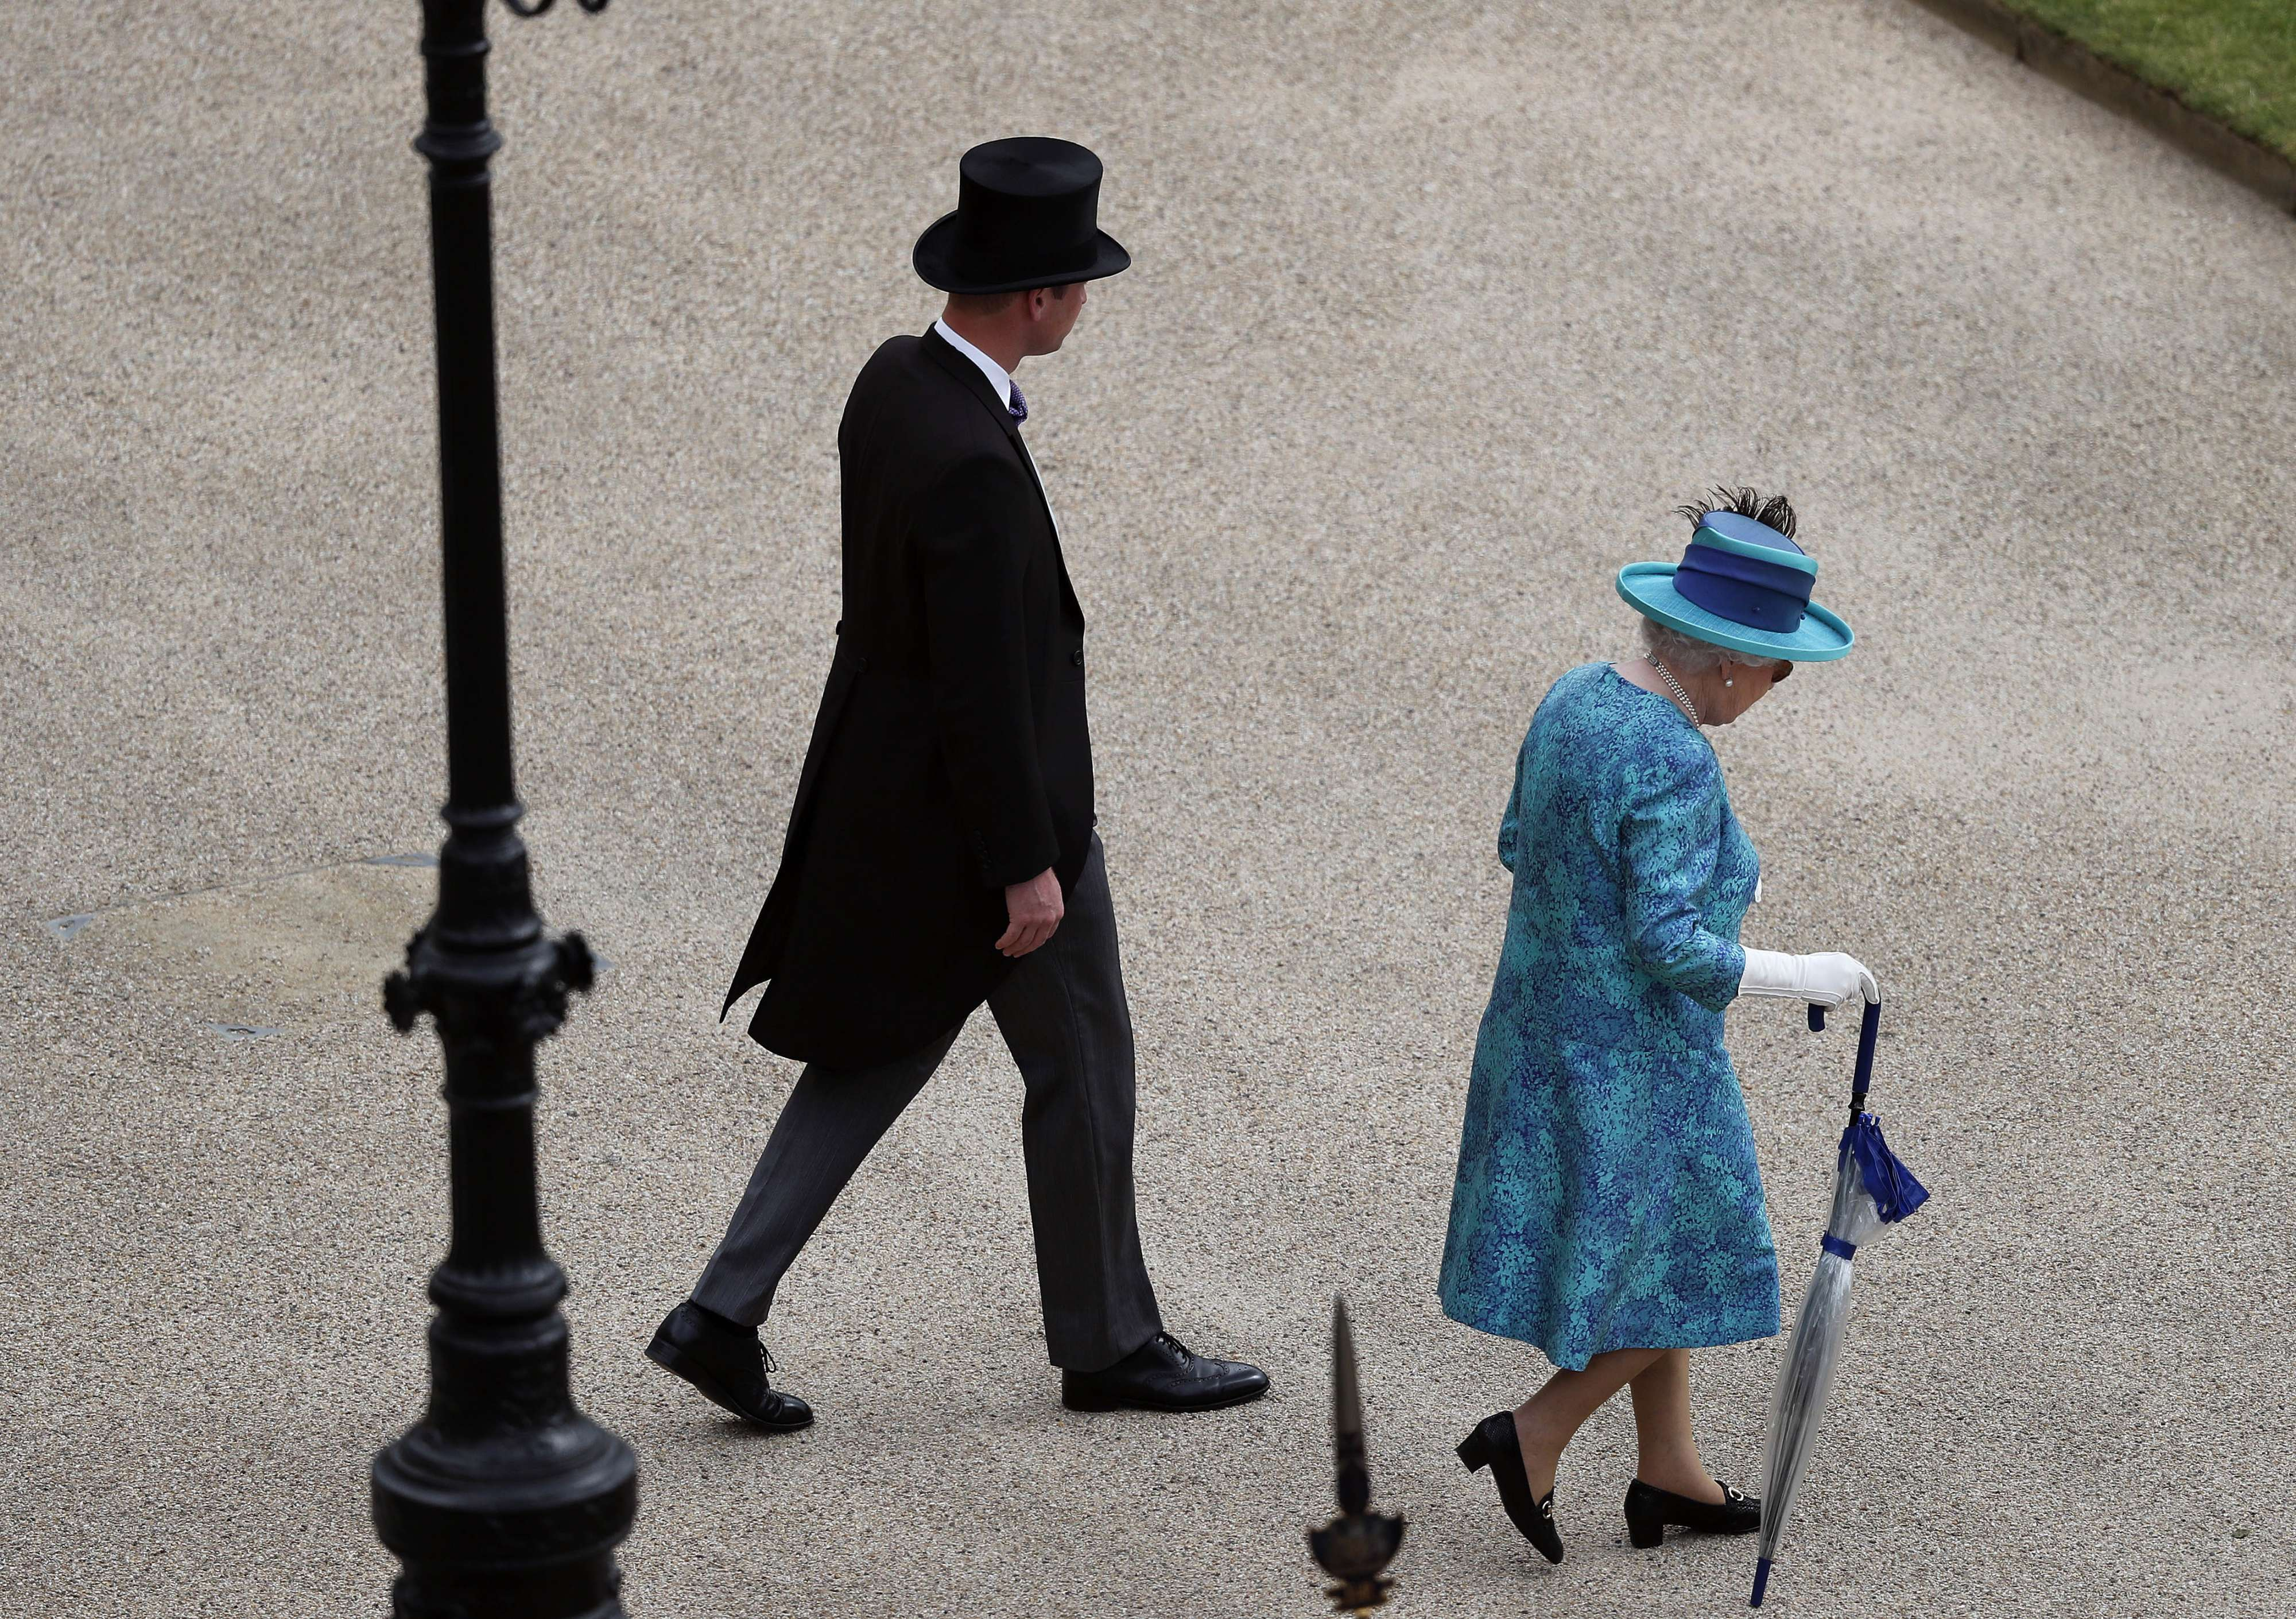 Britain's Queen Elizabeth II (L) and Prince William arrive as she hosts a Garden Party at Buckingham Palace in London, on May 31. (AP)